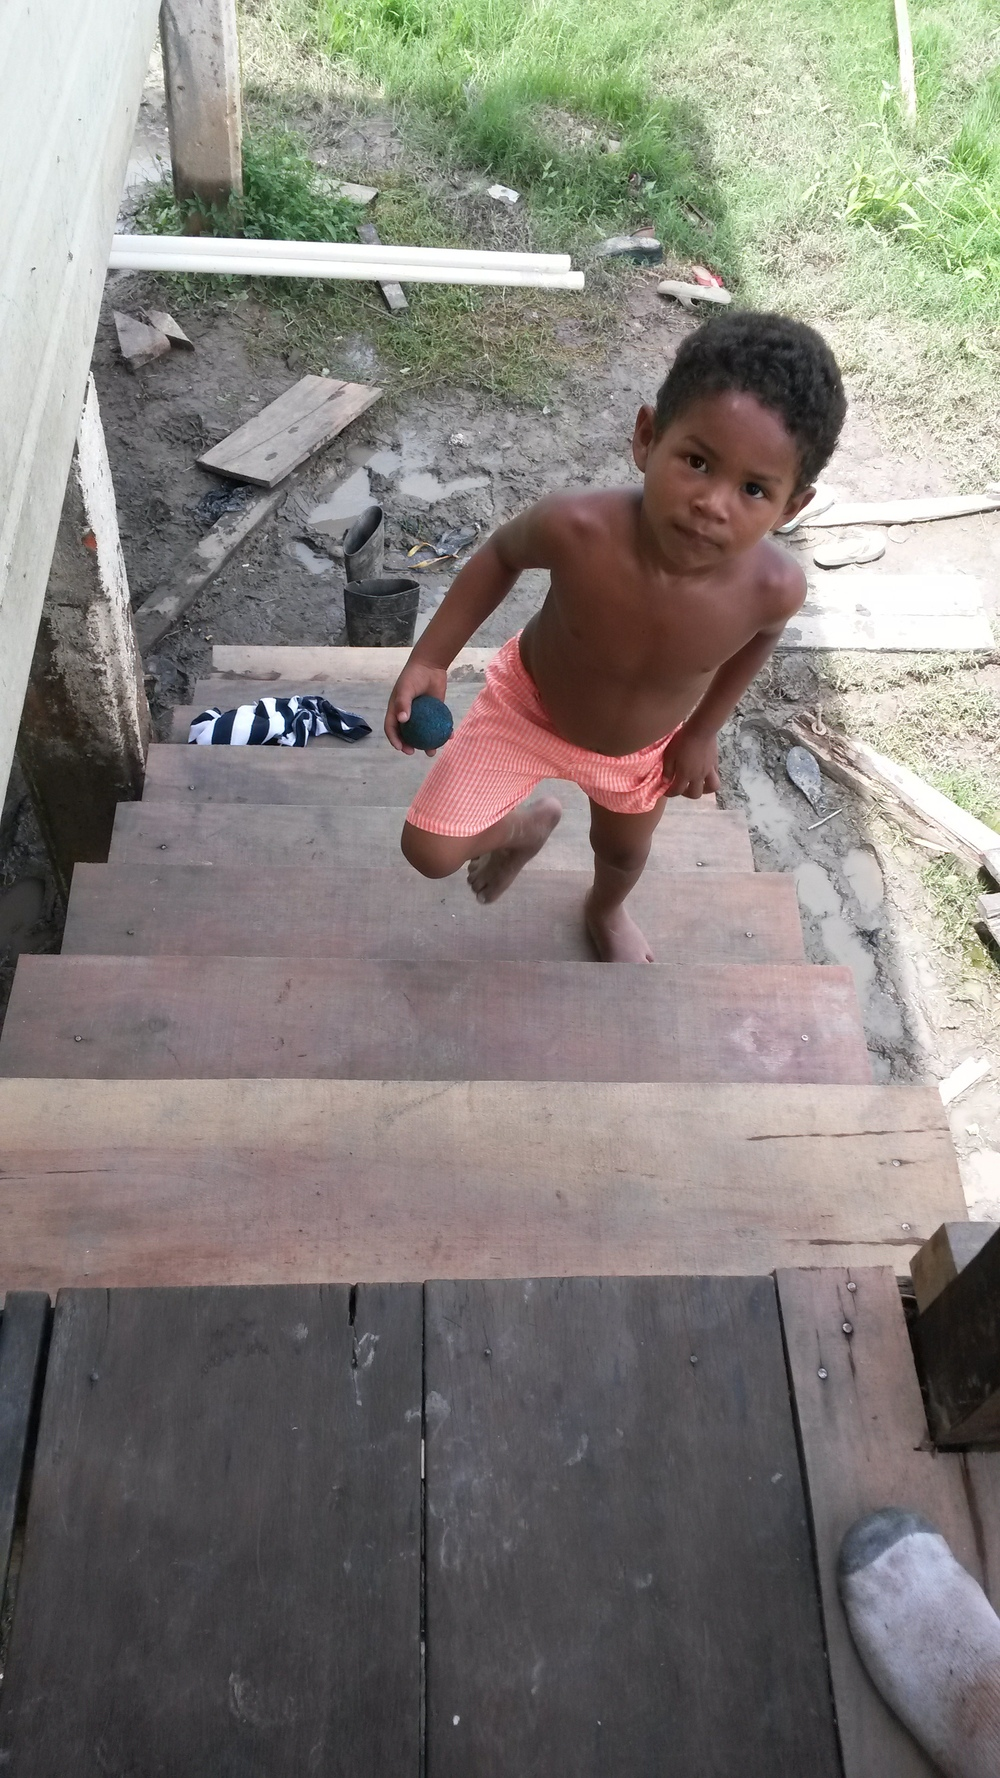 One of the children walking up the newly built front stairway. Rails will be installed shortly.